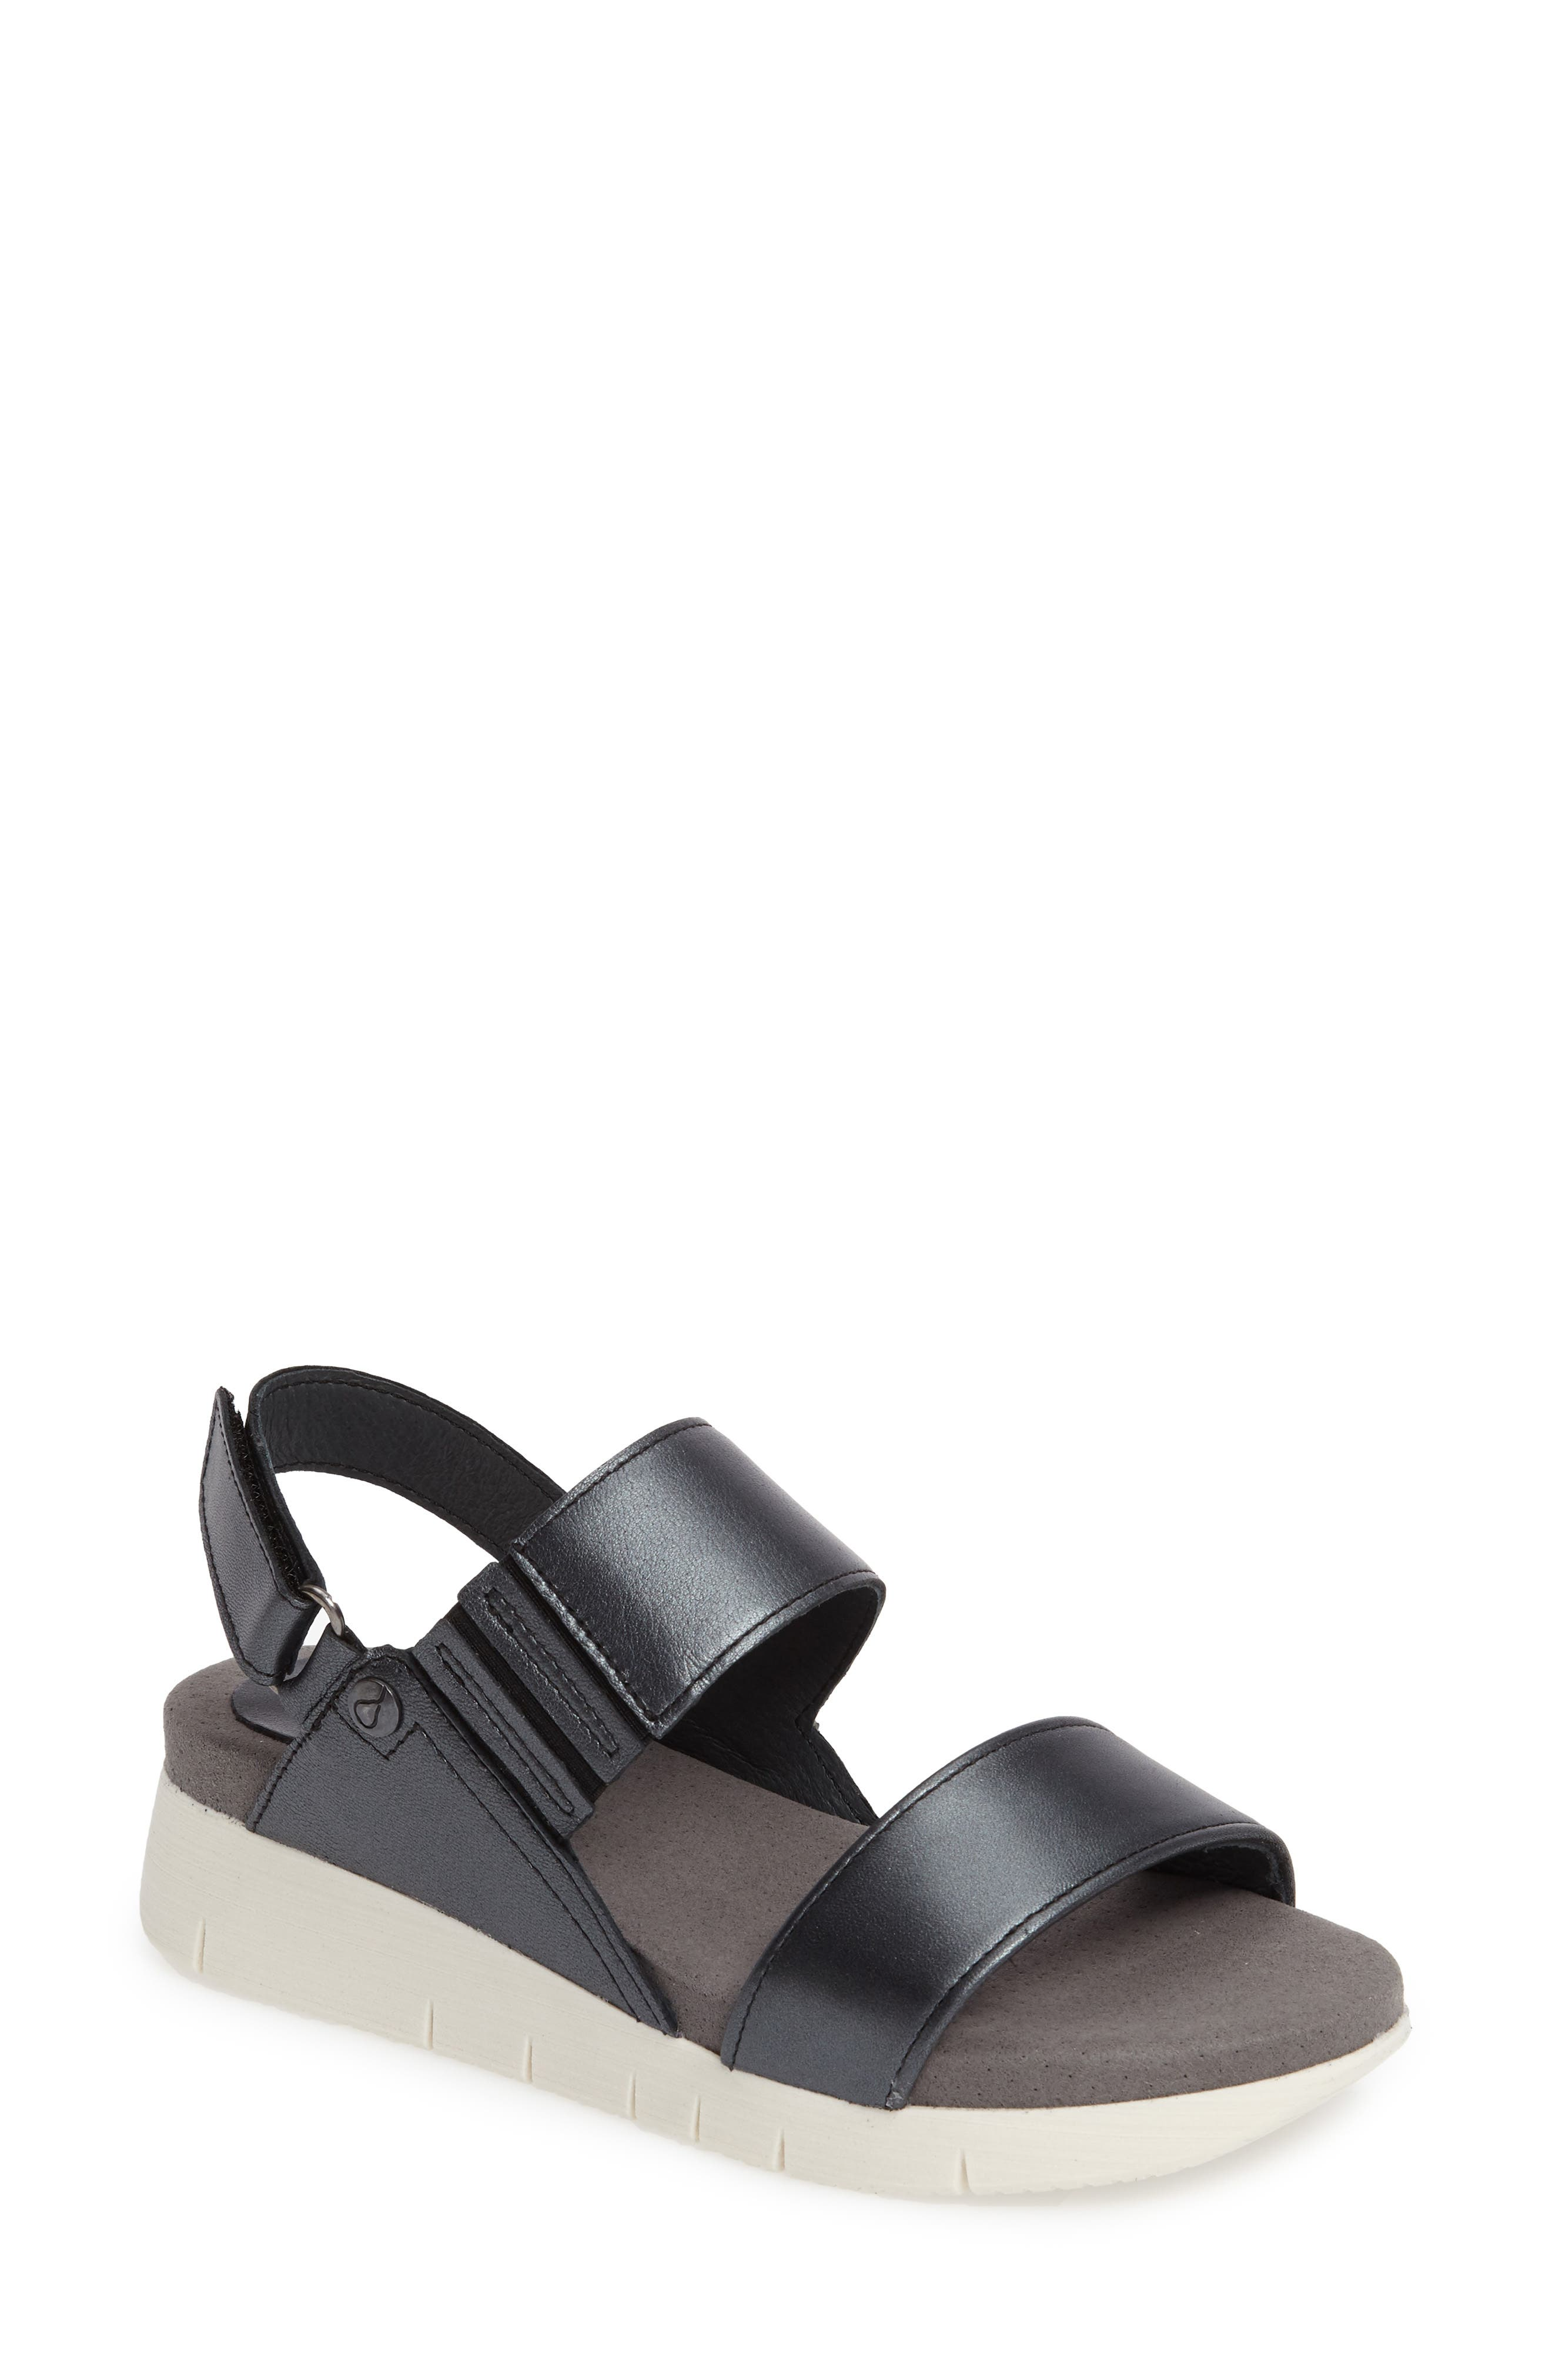 Payge Wedge Sandal,                             Main thumbnail 1, color,                             Black Leather